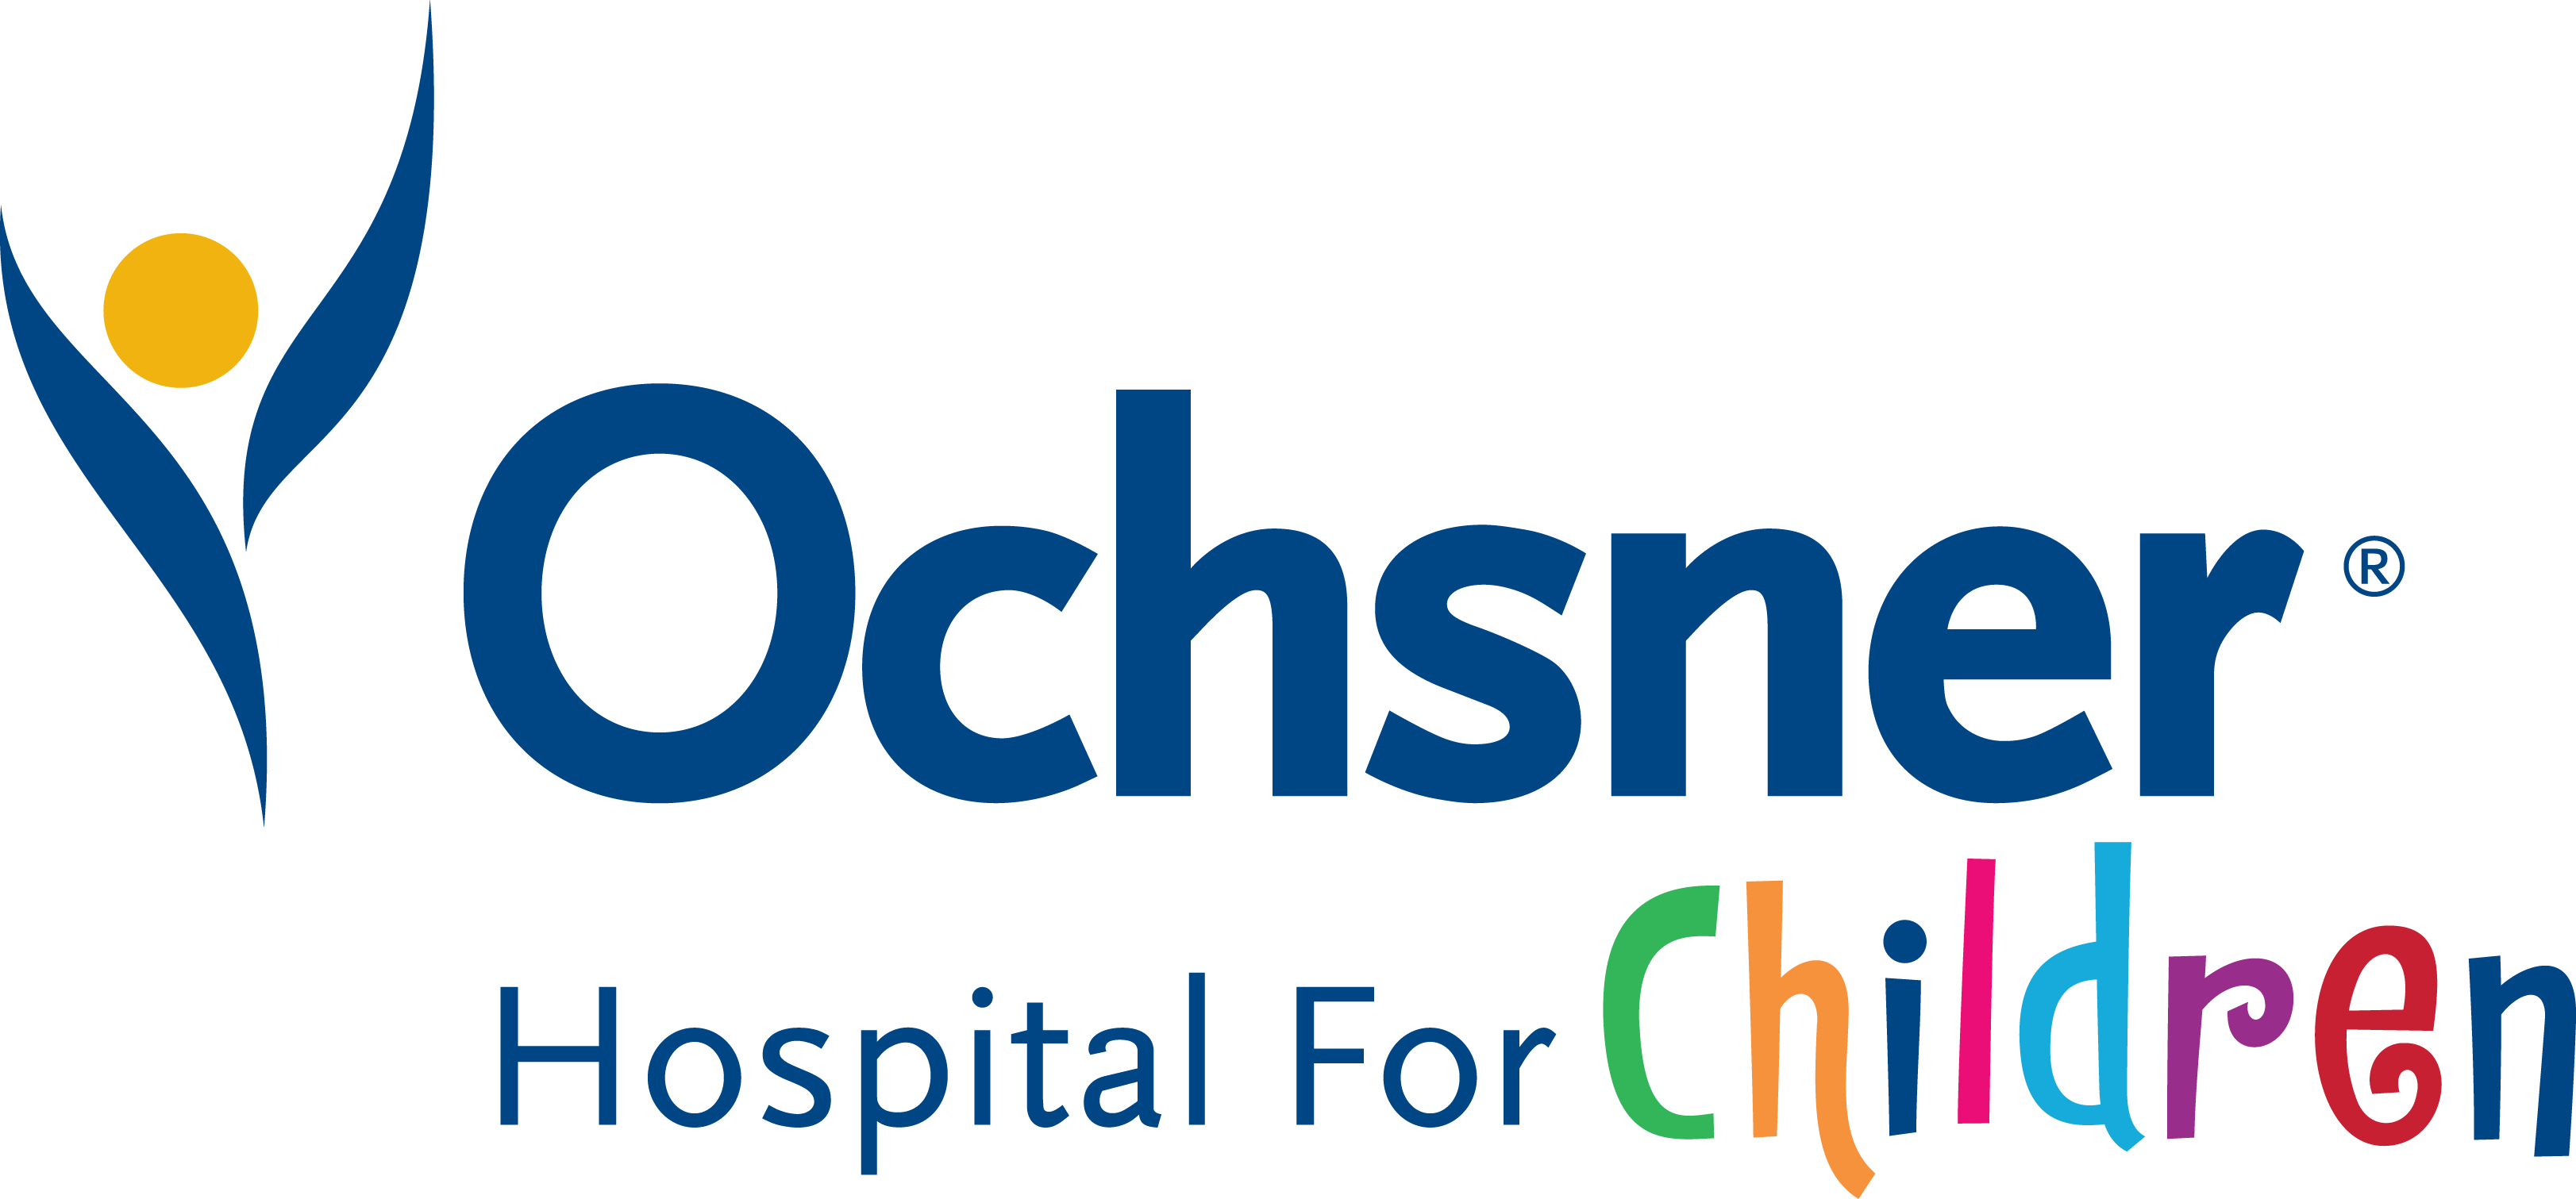 Ochsner Hospital For Children_Logo